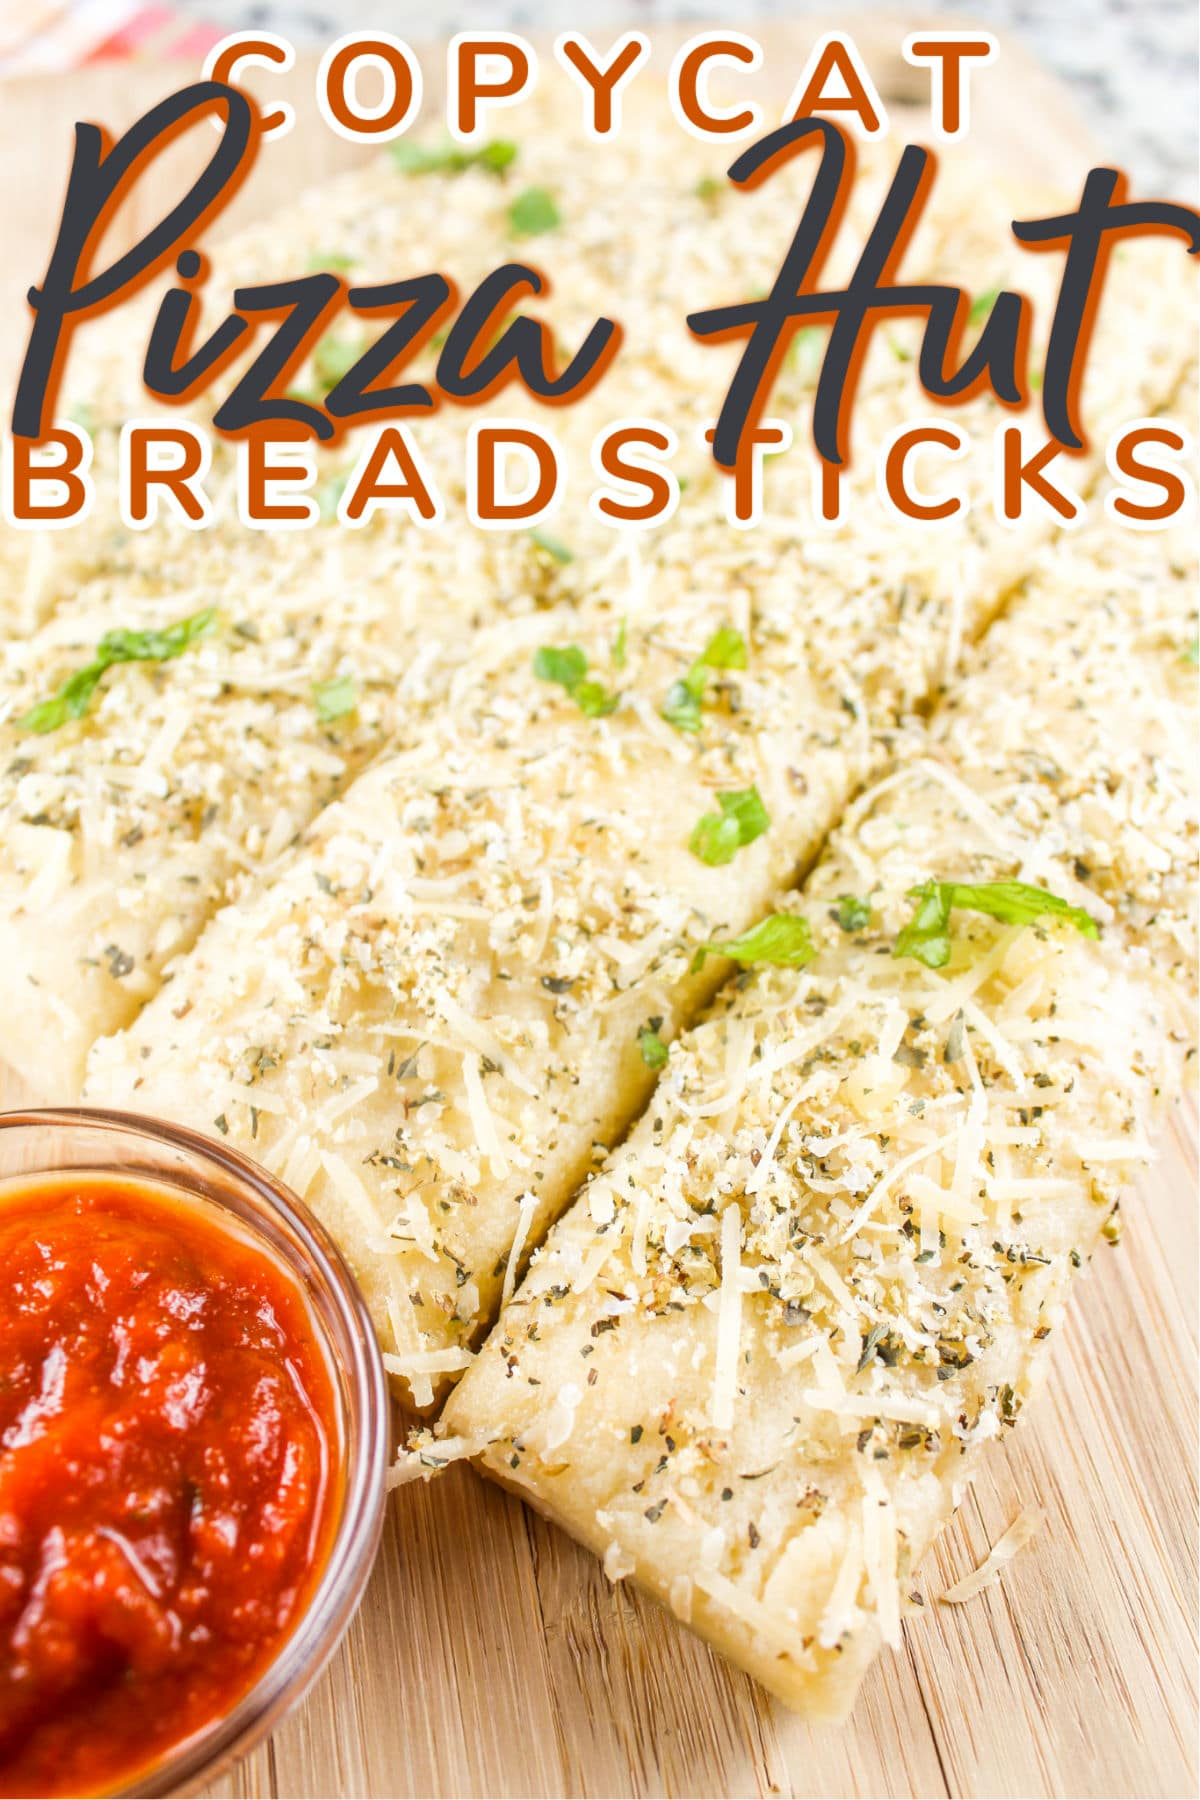 Pizza Hut Breadsticks were one of my favorite appetizers growing up! I finally recreated them in my own kitchen - so delicious - just like I remembered them!